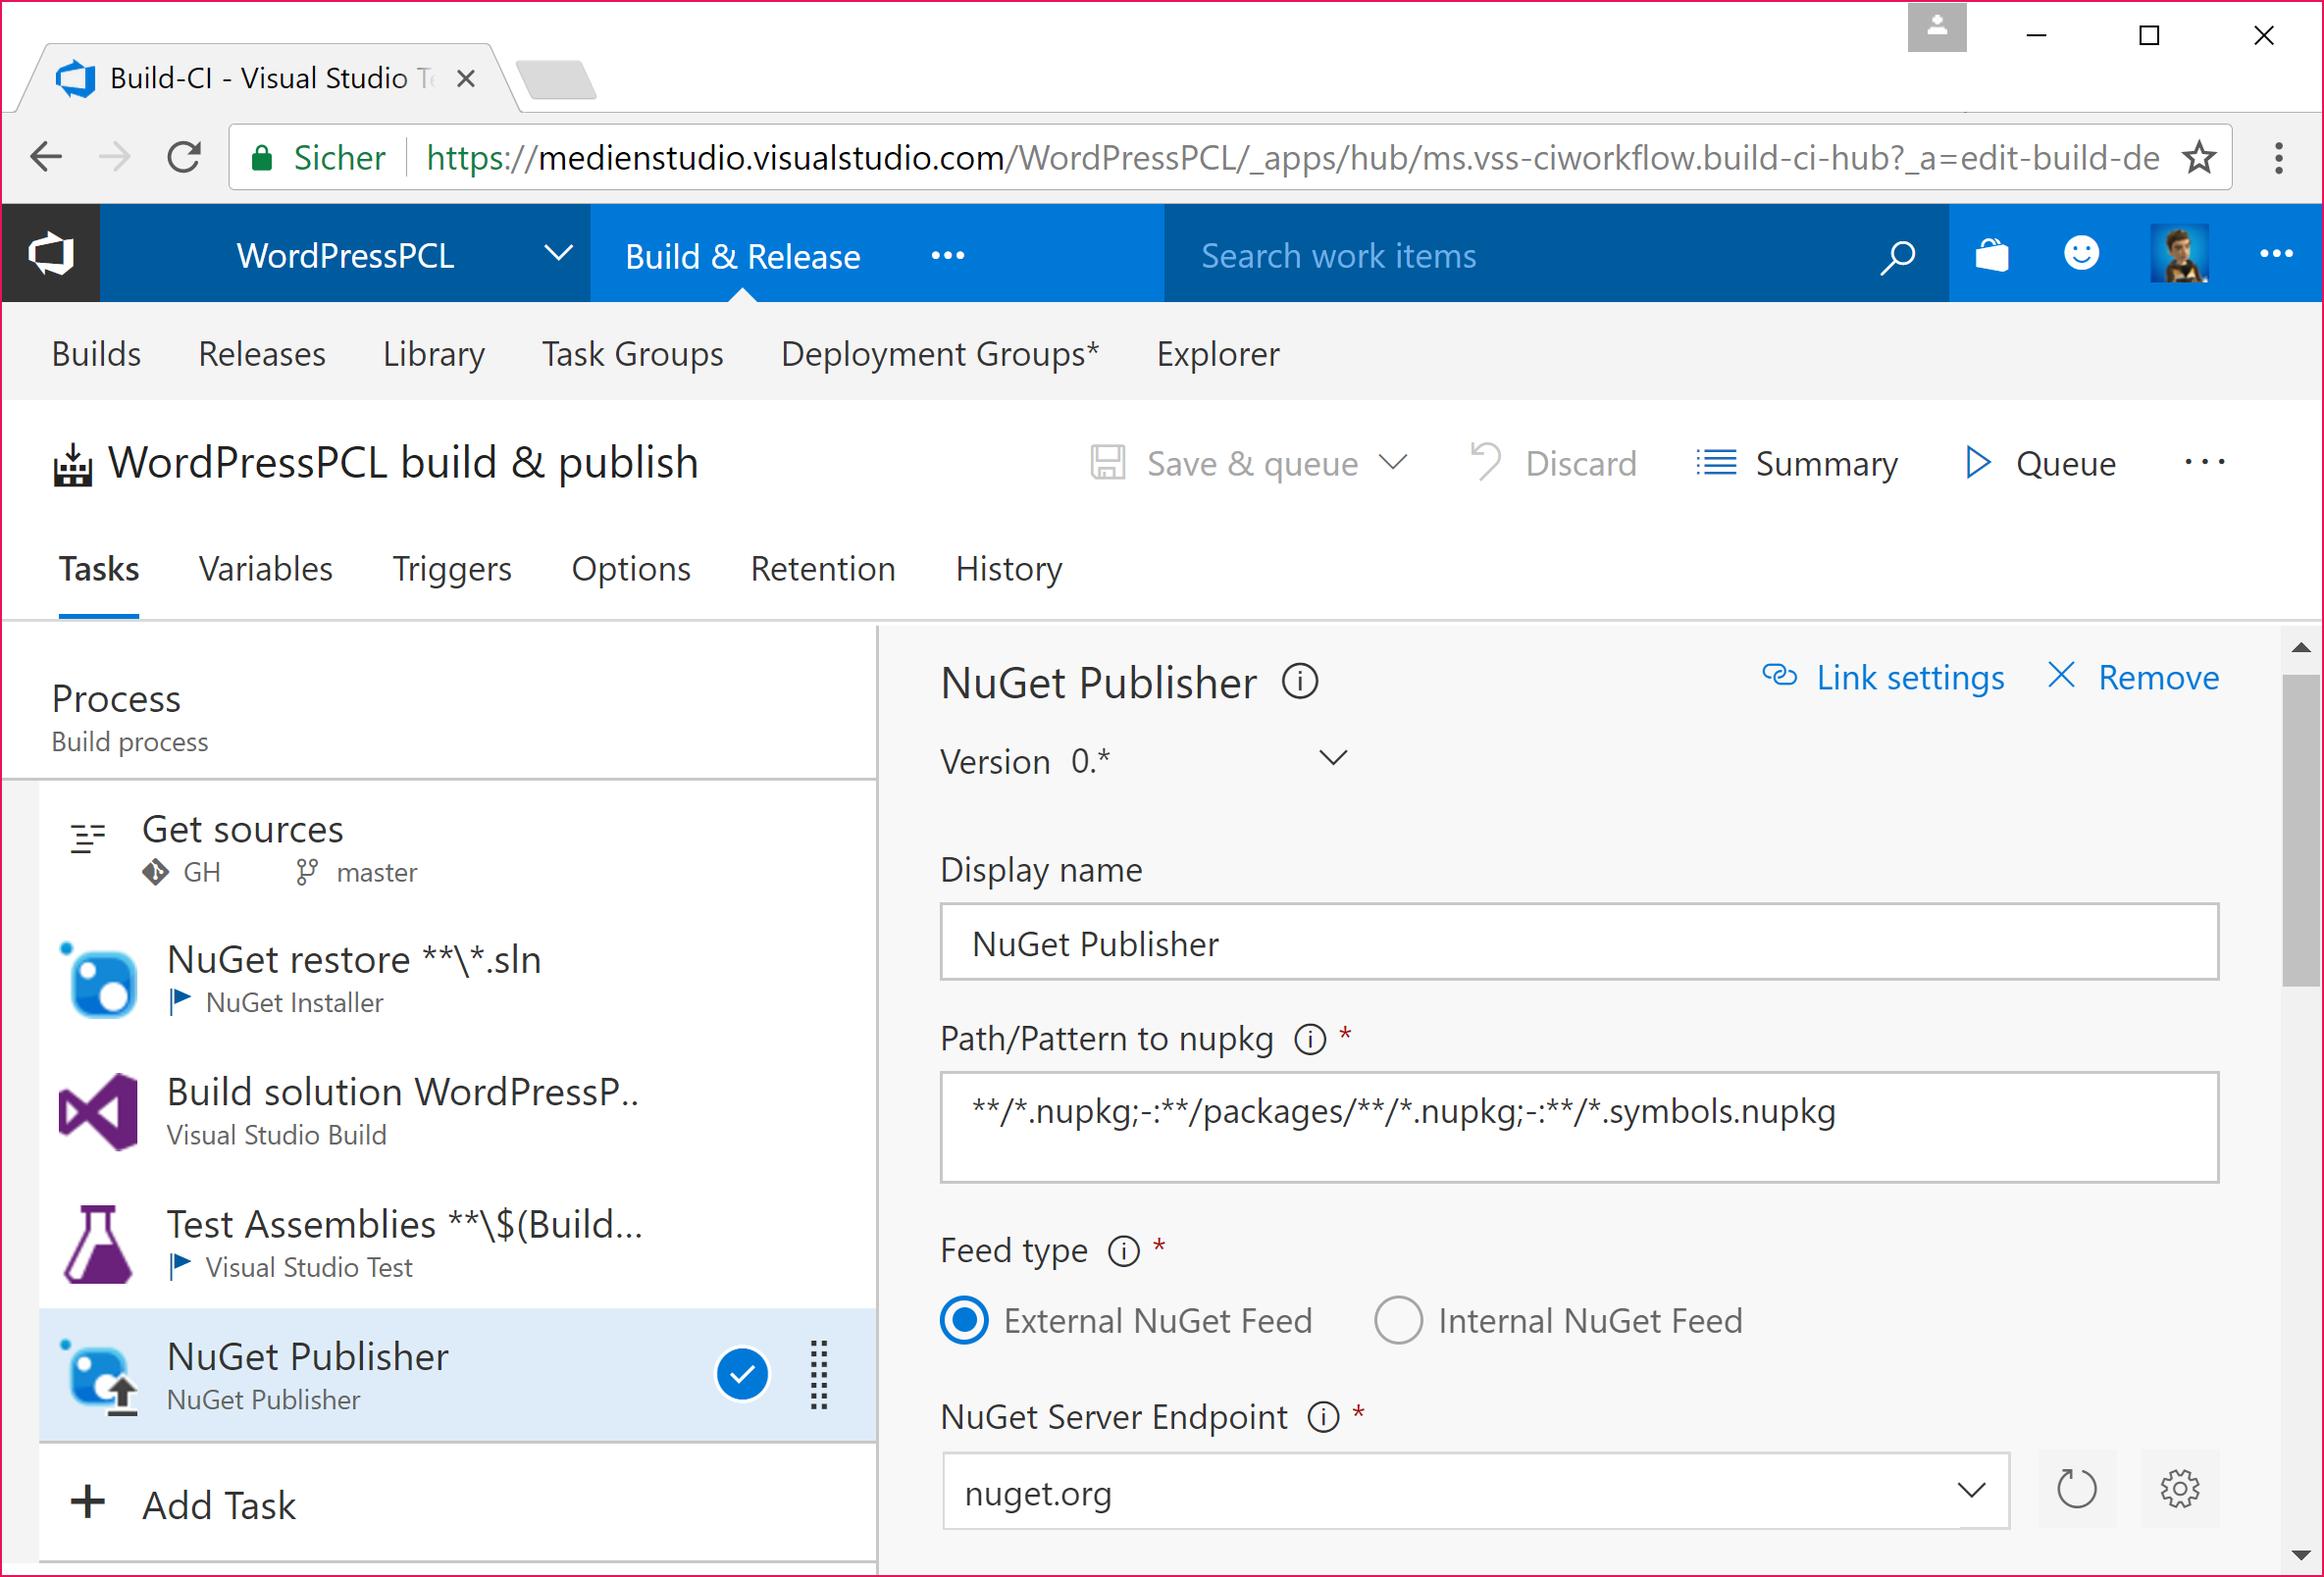 Configure NuGet Publisher Step